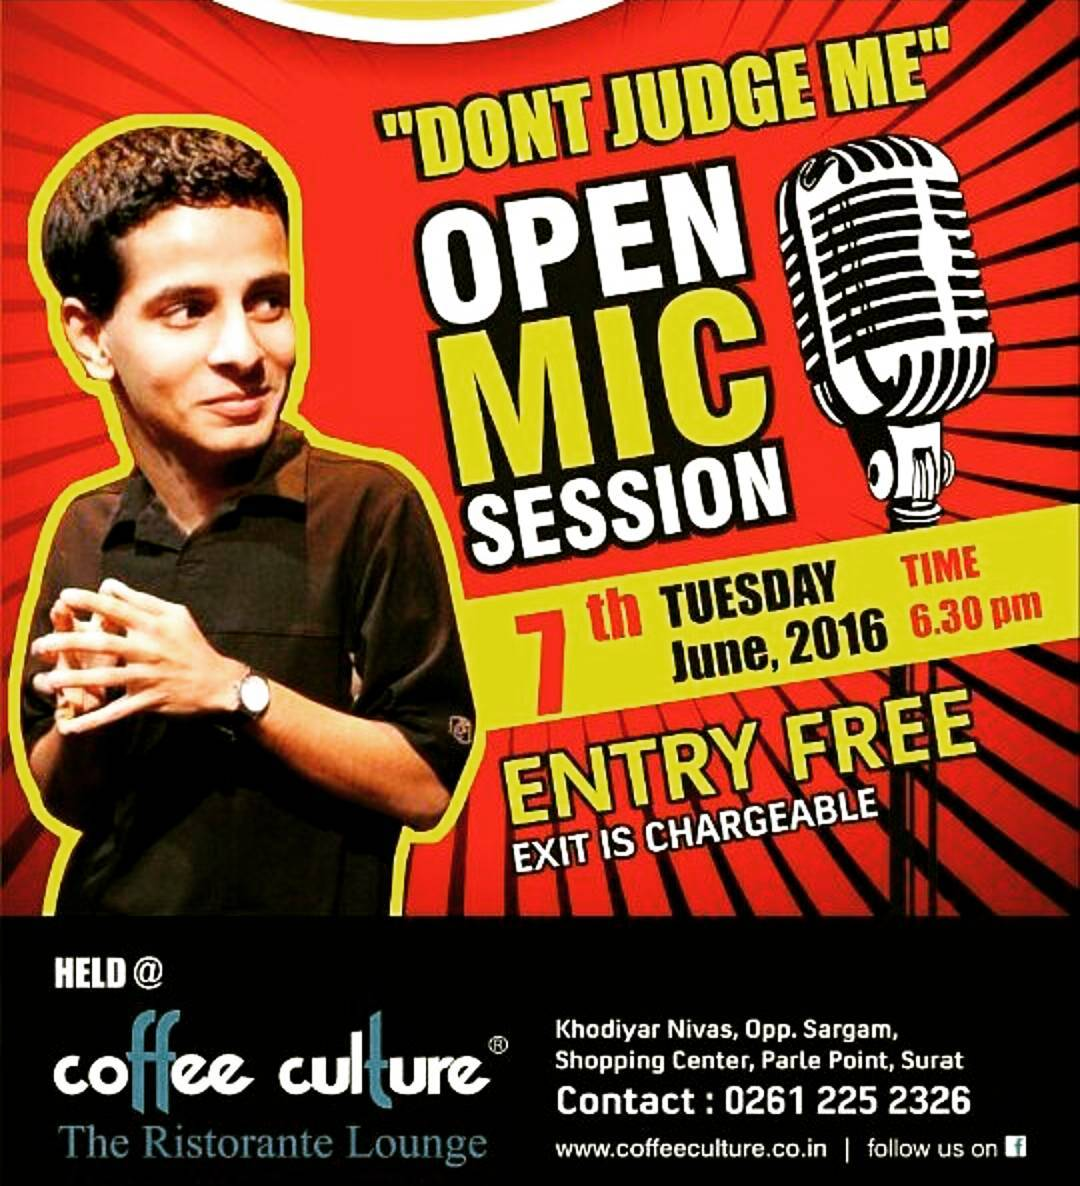 The Open Mic tour will end today in Surat... After a huge Laughter Riot in Vadodara & Ahmedabad @thecomedyfactoryindia brings a FREE for audience open mic show... Host for the evening is the Legendary @ojasrawal ... I am performing with @chirayu_m @instafunny_manan @tathaagat ... #standup #comedy #nautanki #thecomedyfactory #tcf #openmic #coffeeculture #surat #ahmedabad #vadodara